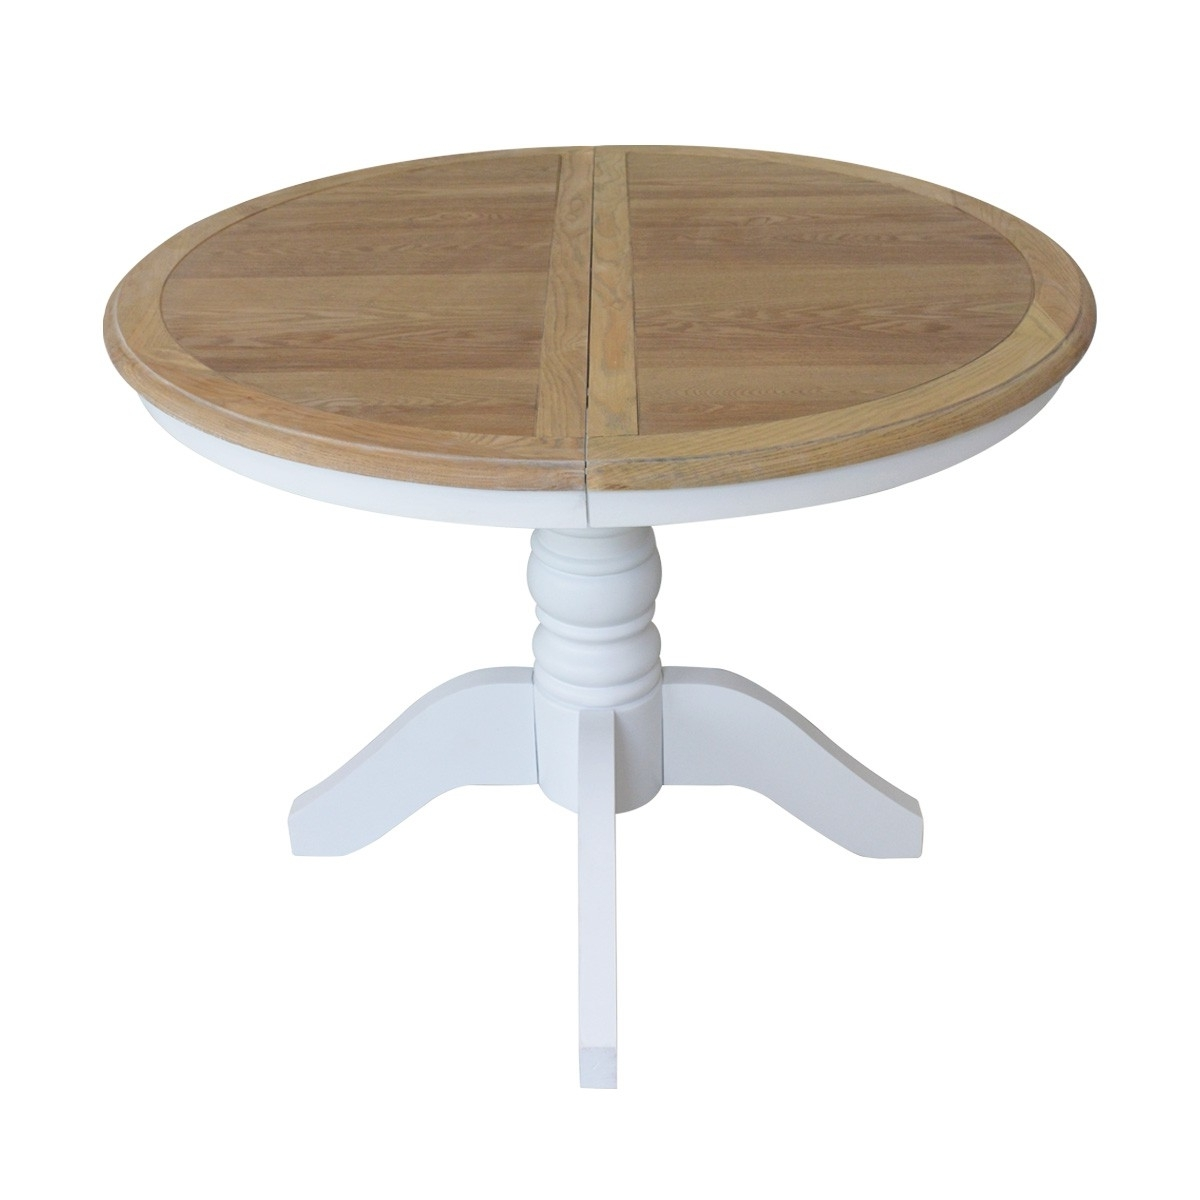 French Provincial Classic White Extendable Round Dining Table With Regarding Newest Extendable Round Dining Tables (View 8 of 25)